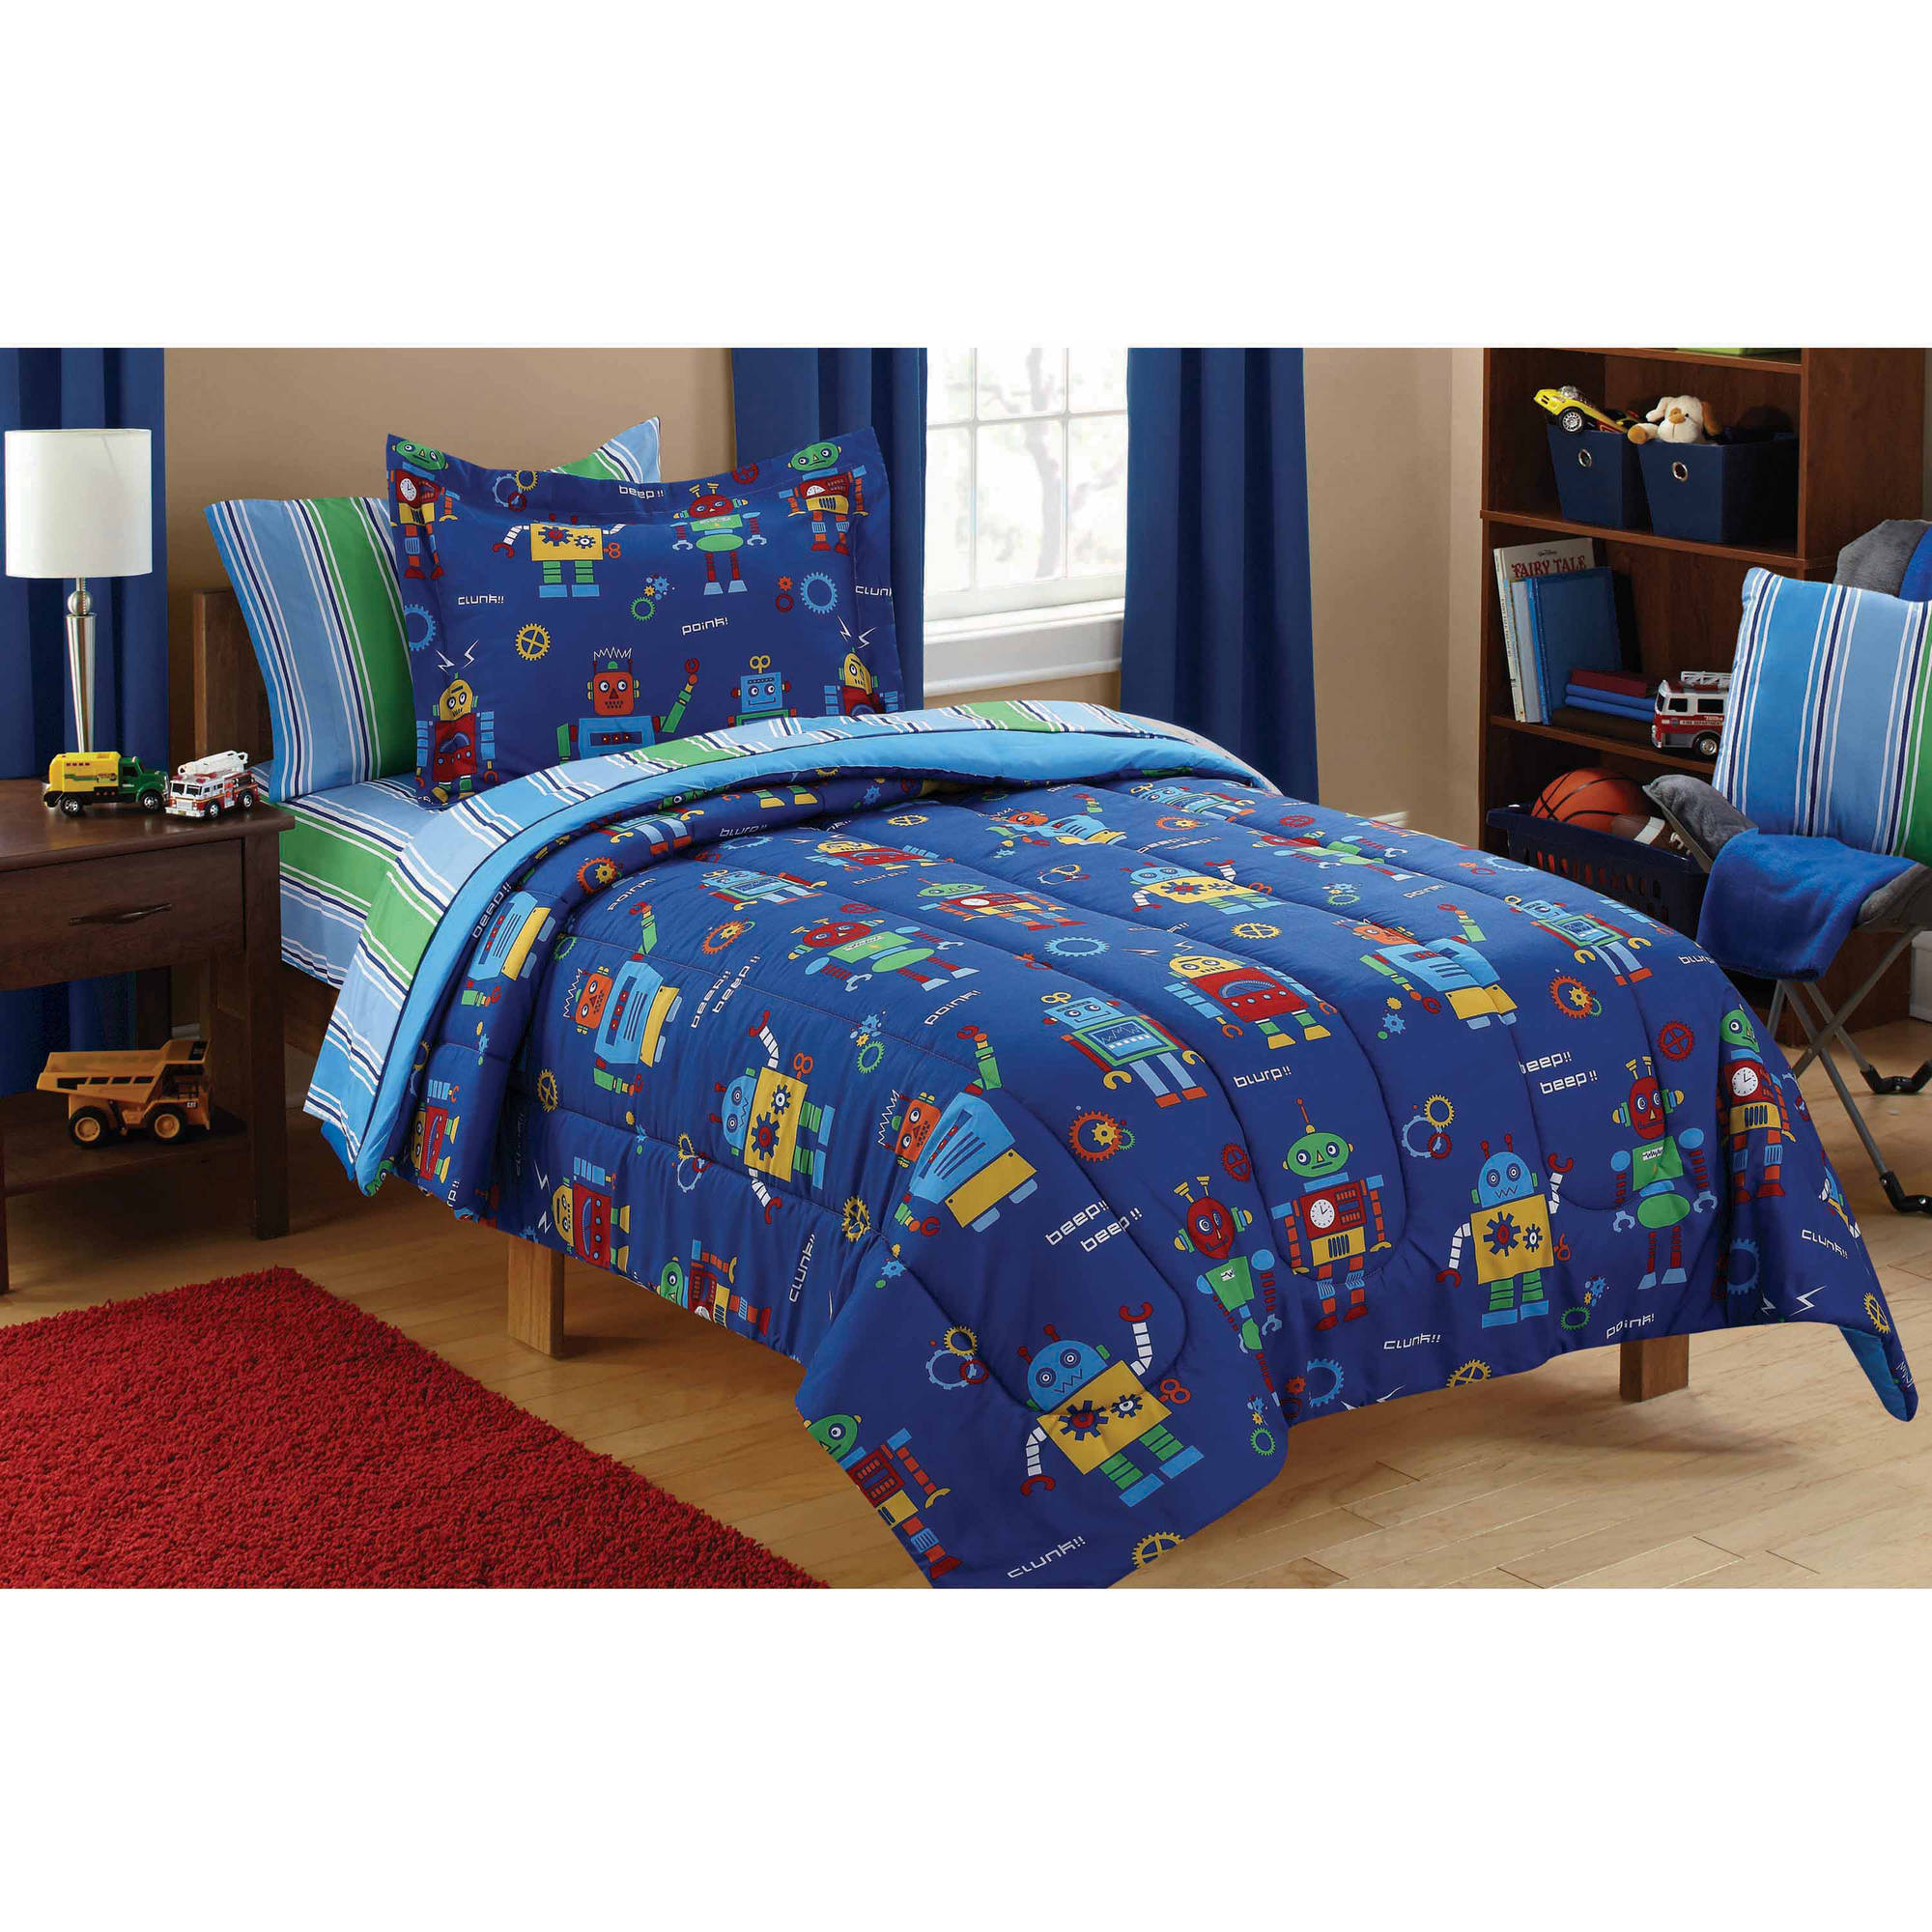 Sheets Childrens Bedroom Sets